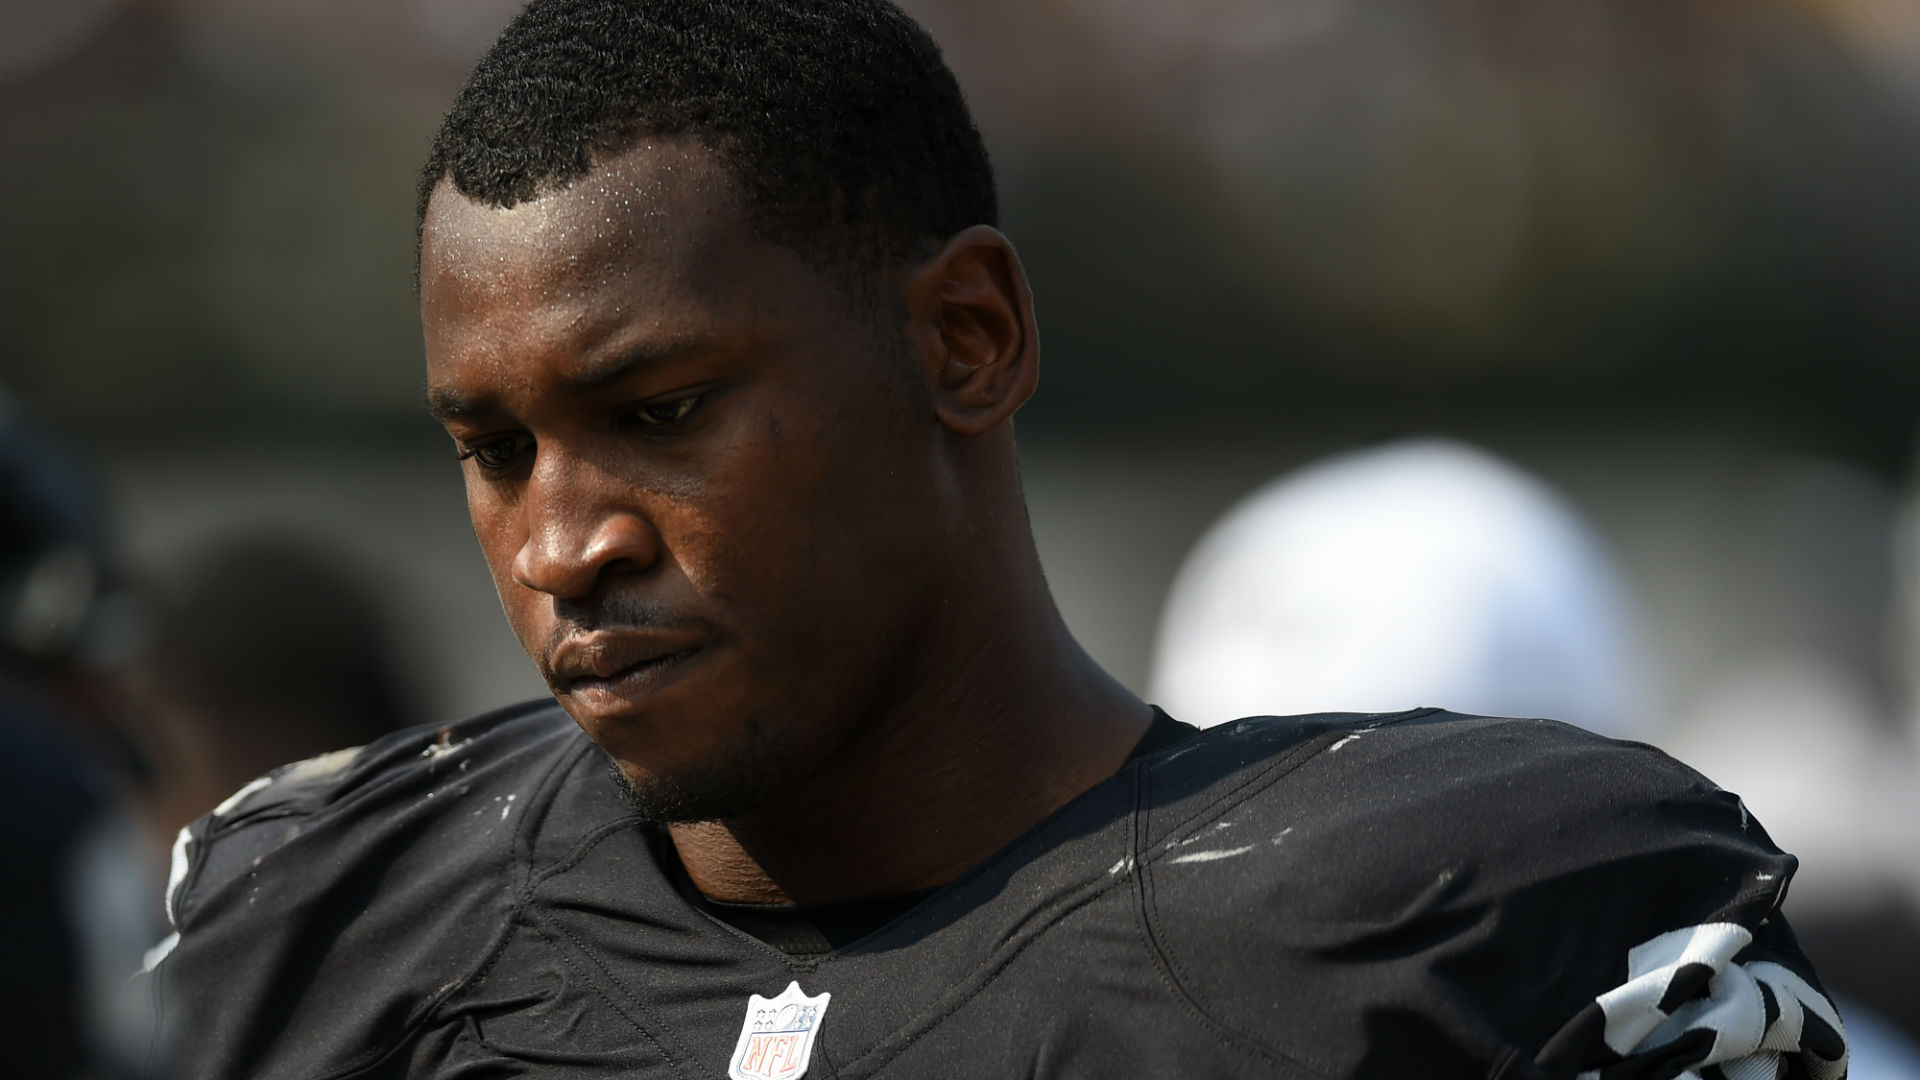 Police in the Seahawks wanted Aldon Smith to be charged with a secondary battery